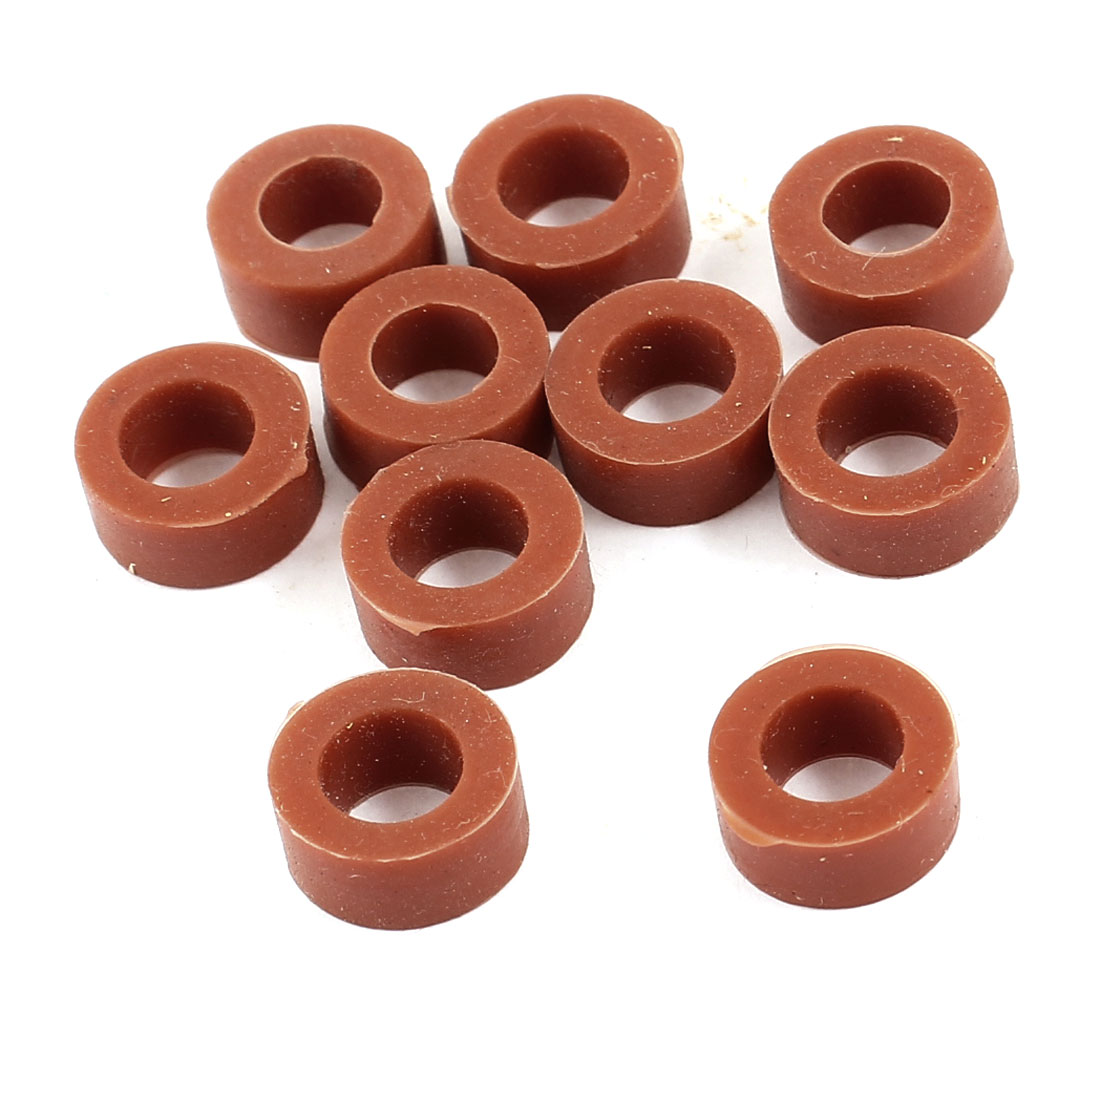 10 Pcs Mechanical Red Rubber O Rings Oil Seal Washers 15mm OD Burgundy